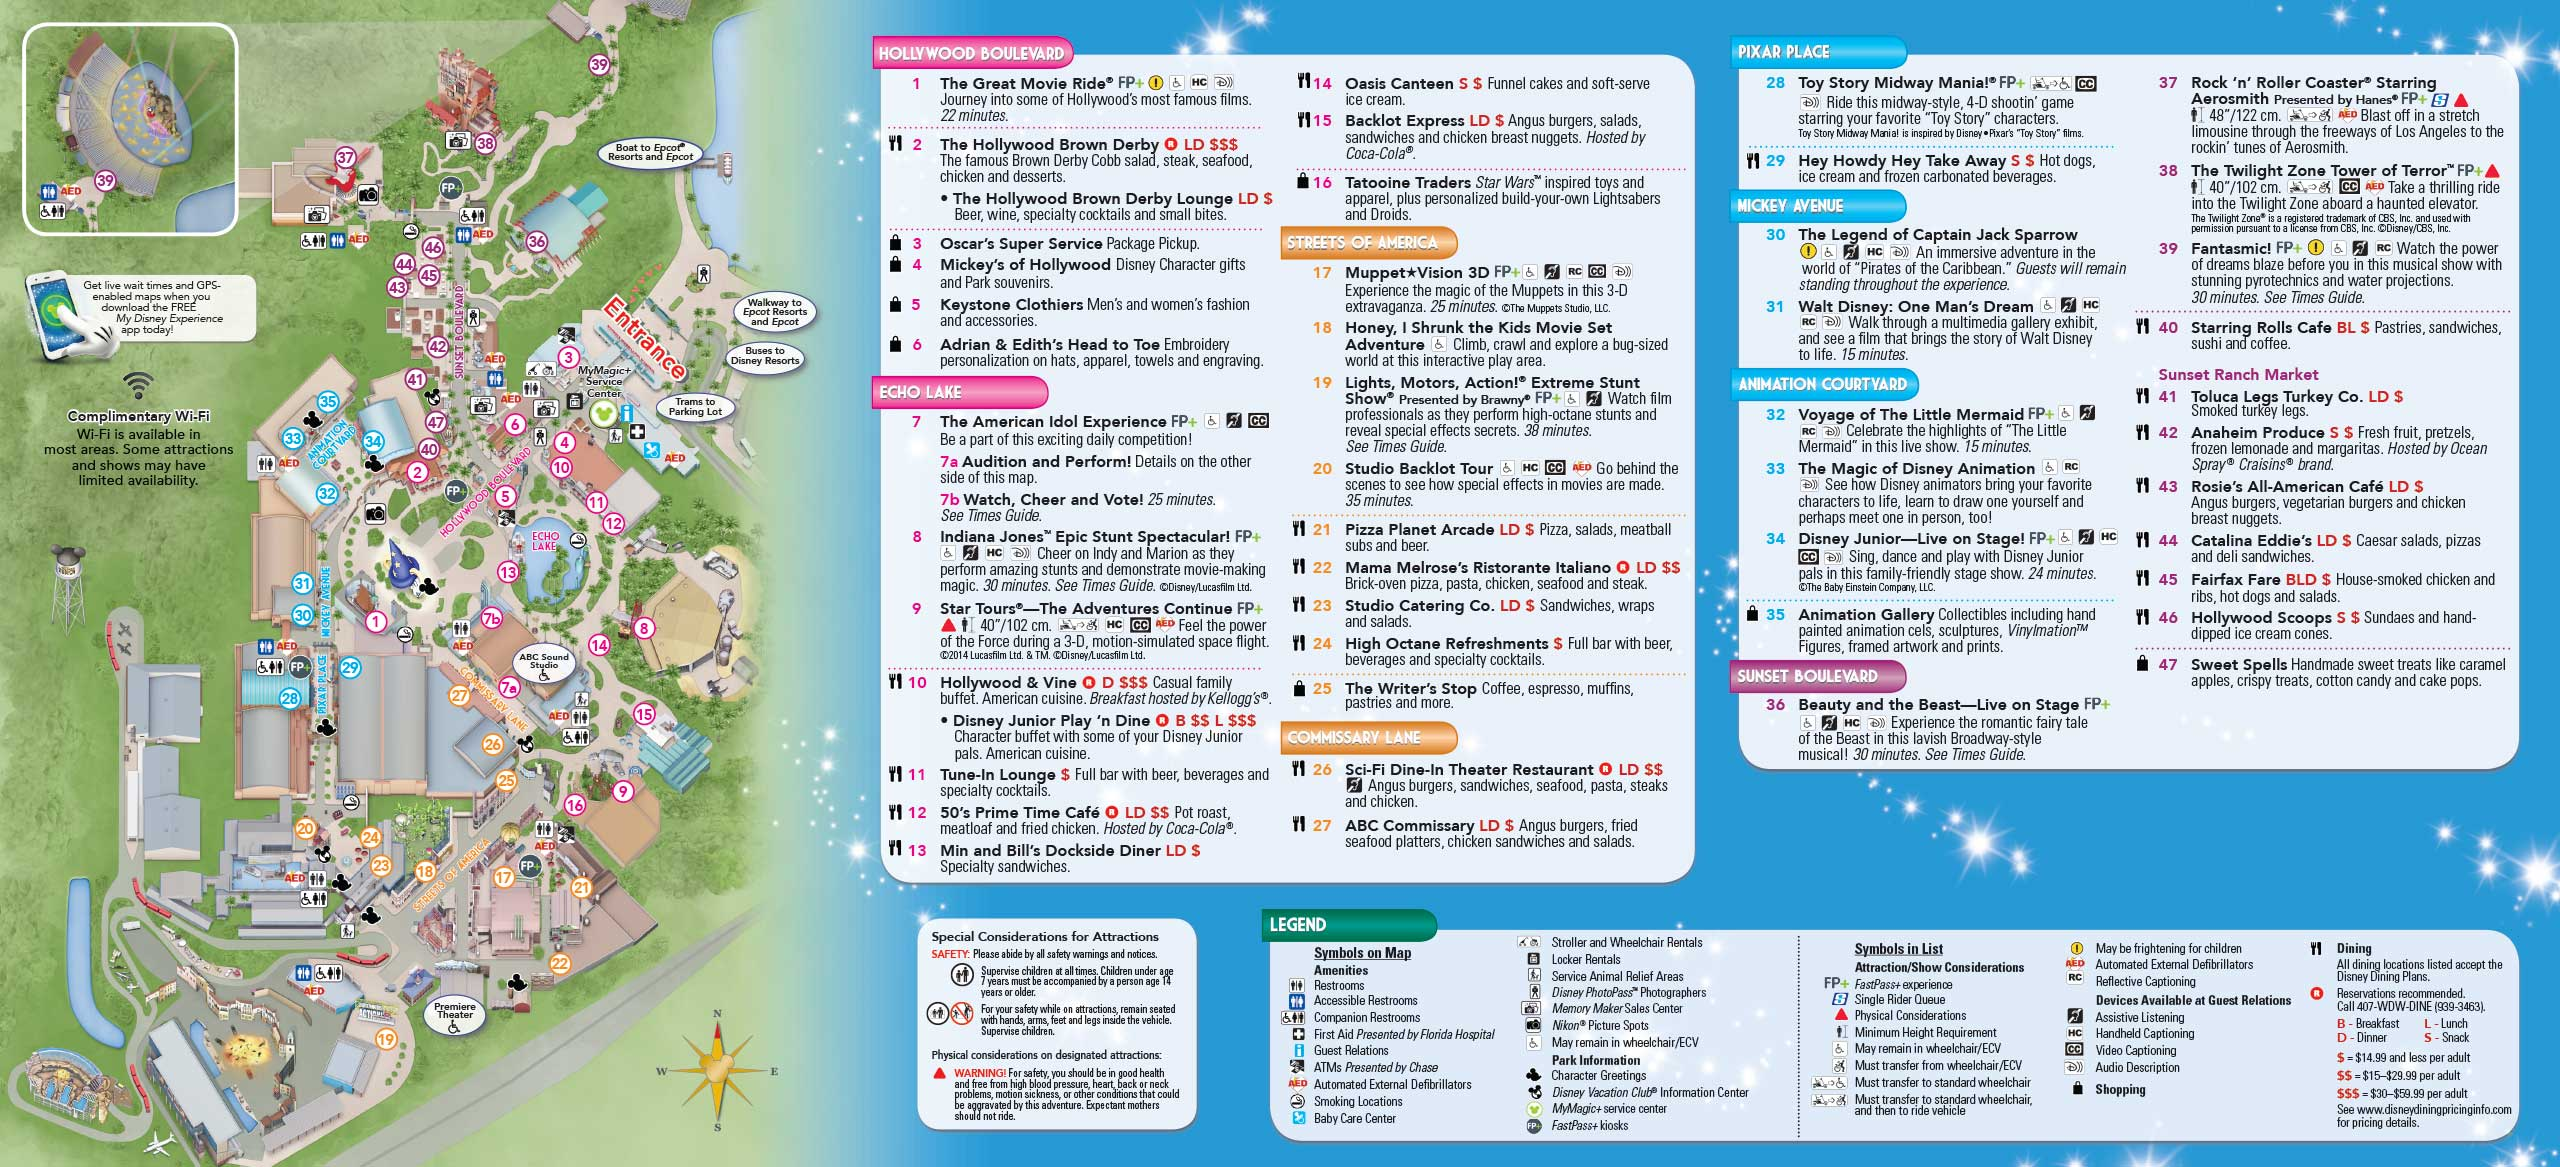 2014 Disney's Hollywood Studios guide map with FastPass+ details